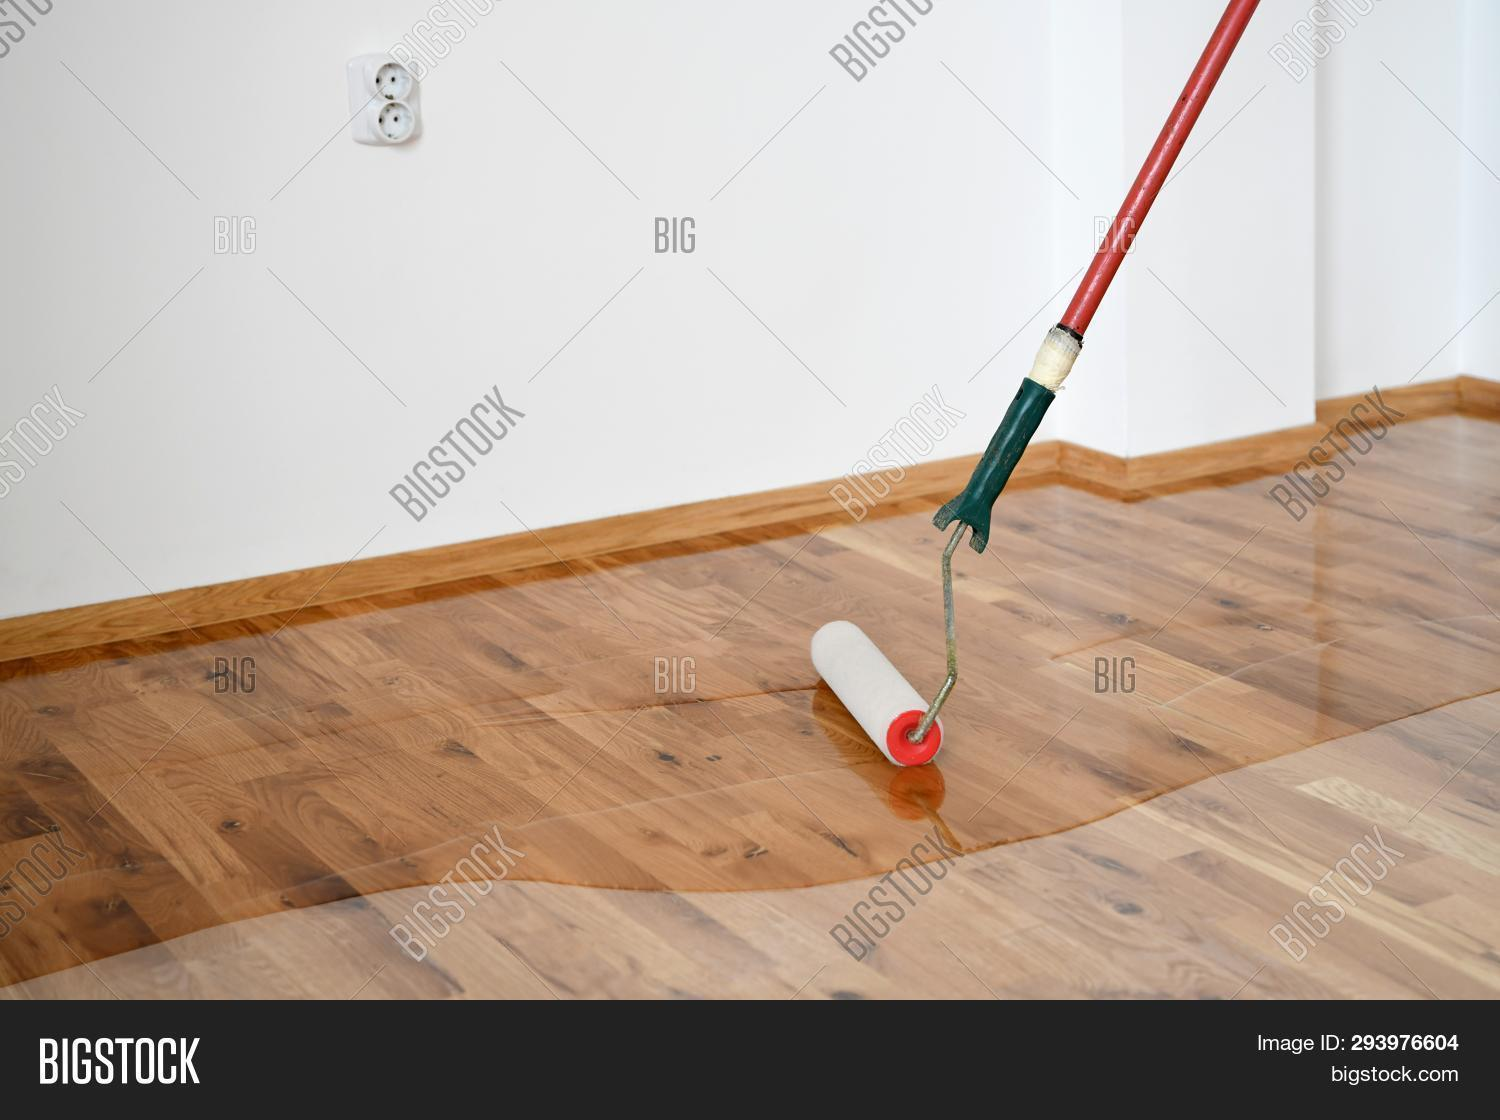 Lacquering Wood Floors Image Photo Free Trial Bigstock